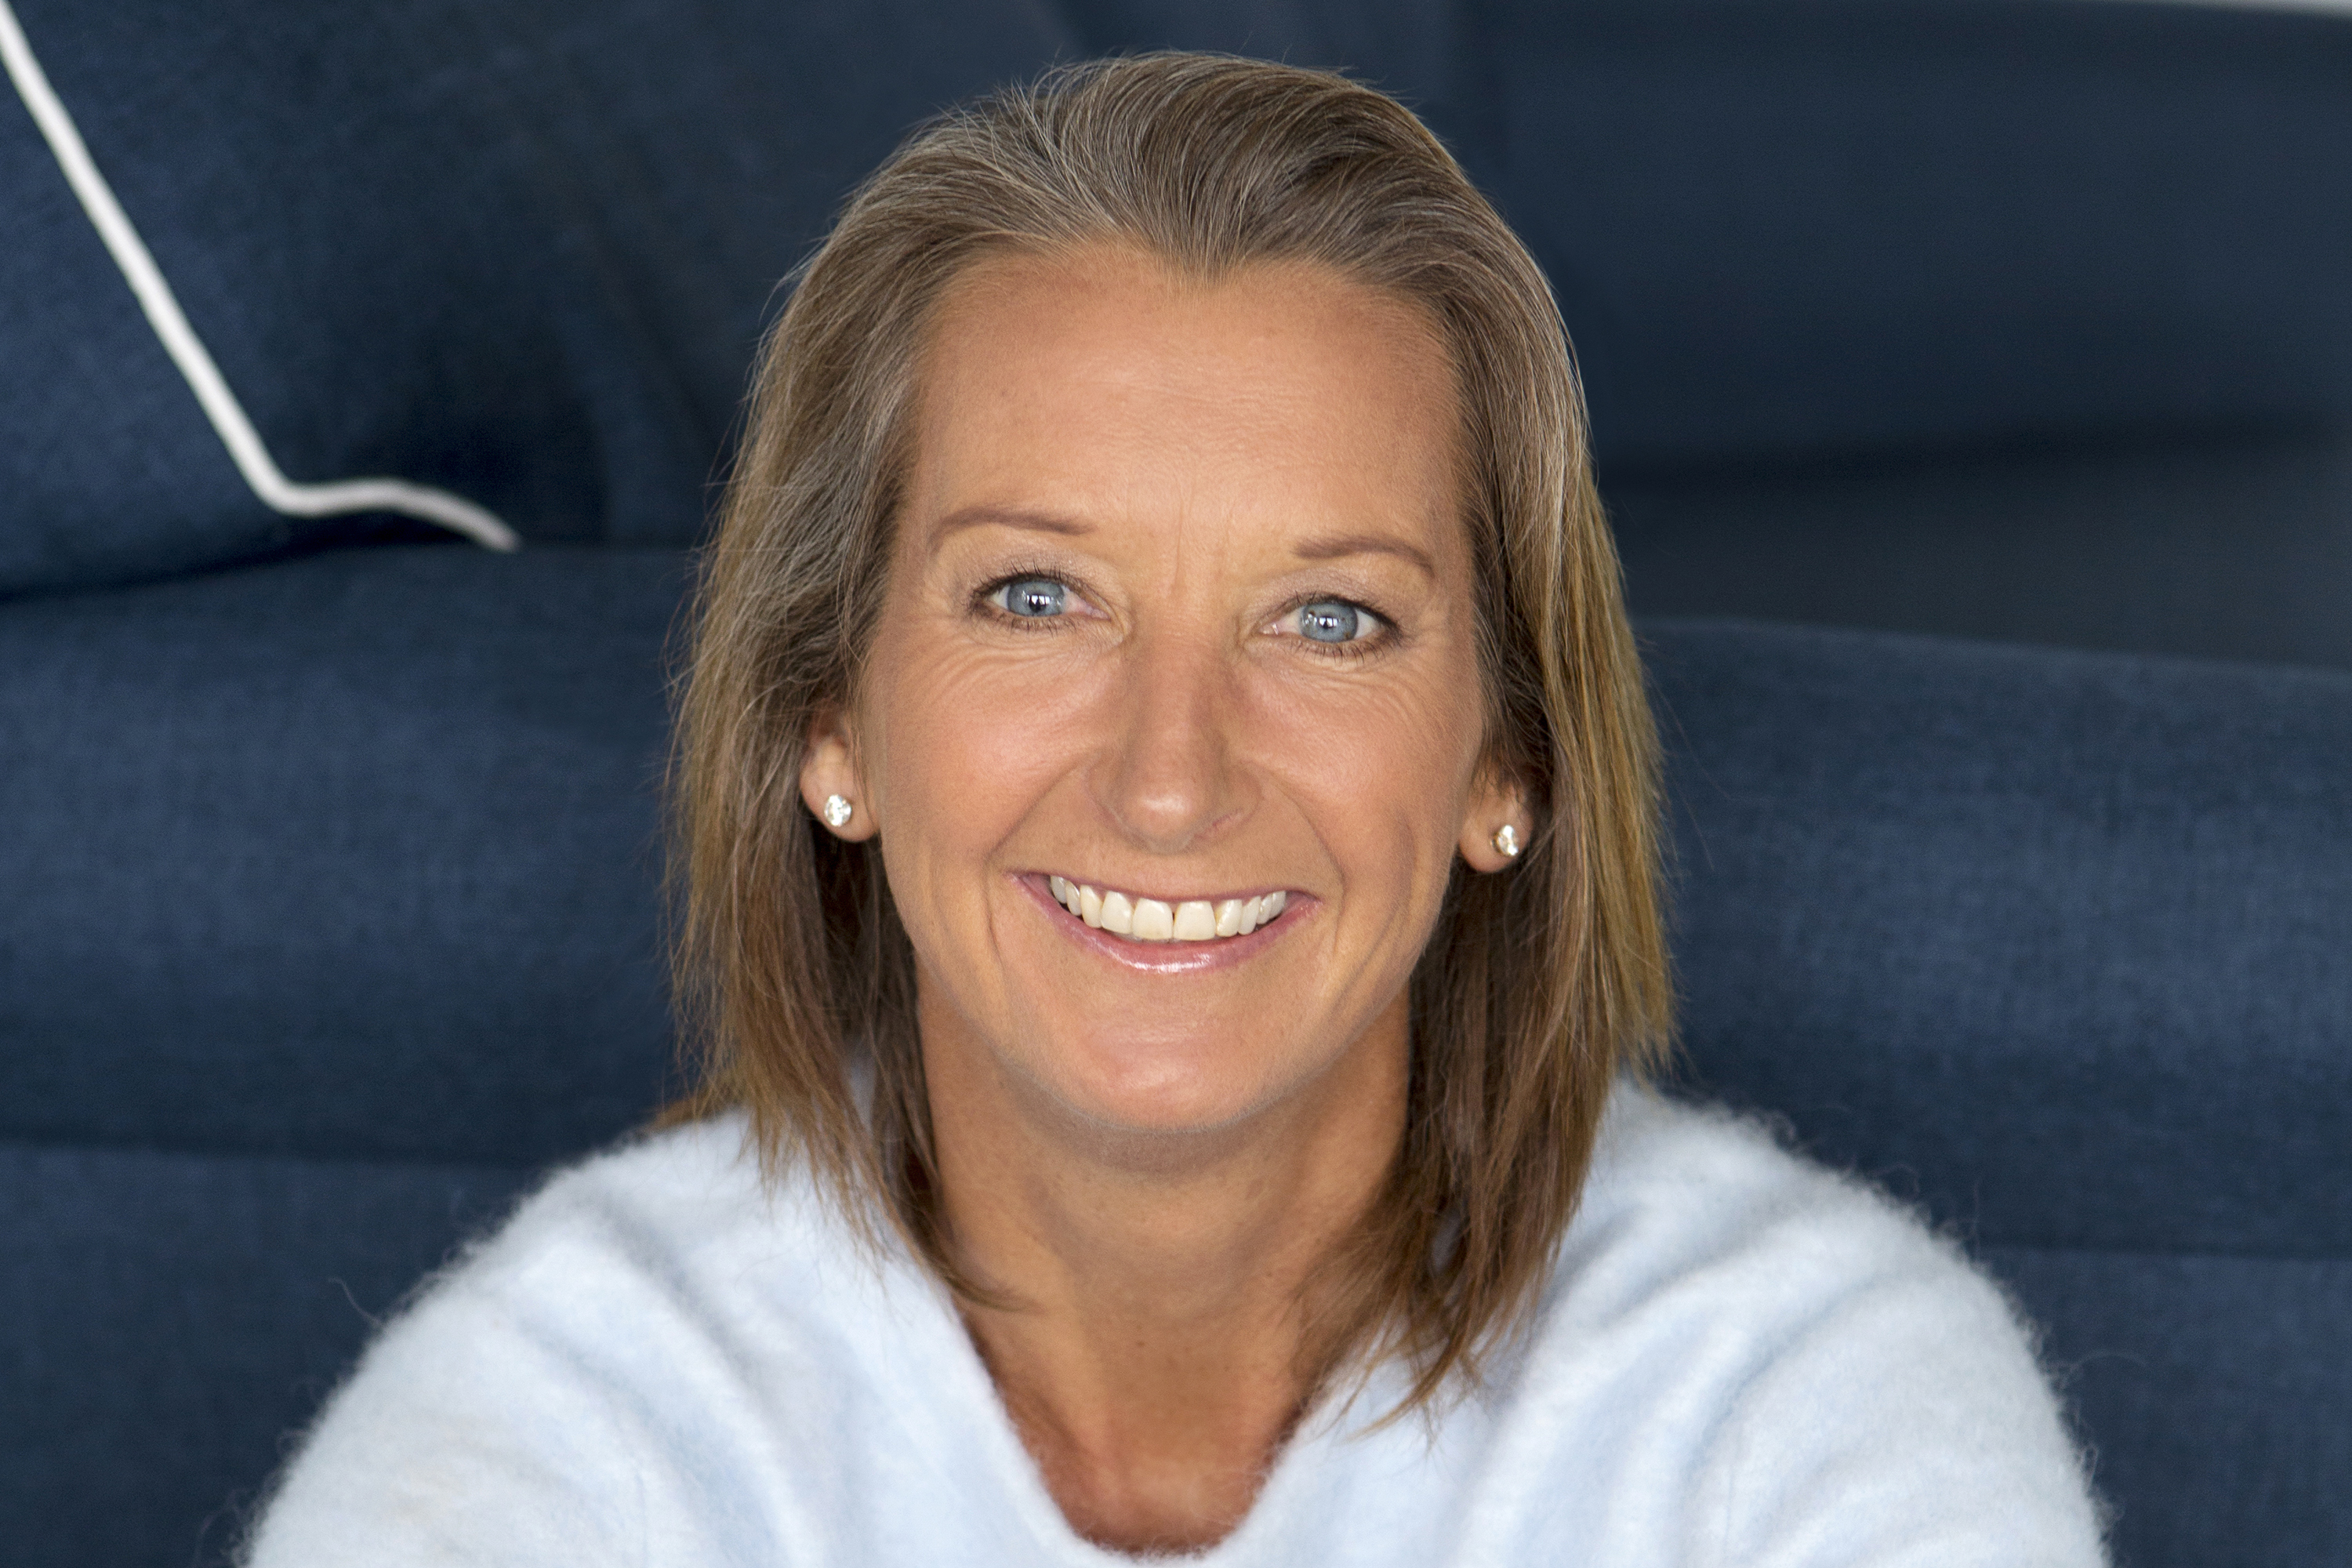 Speakers related to Alastair Lynch: Layne Beachley